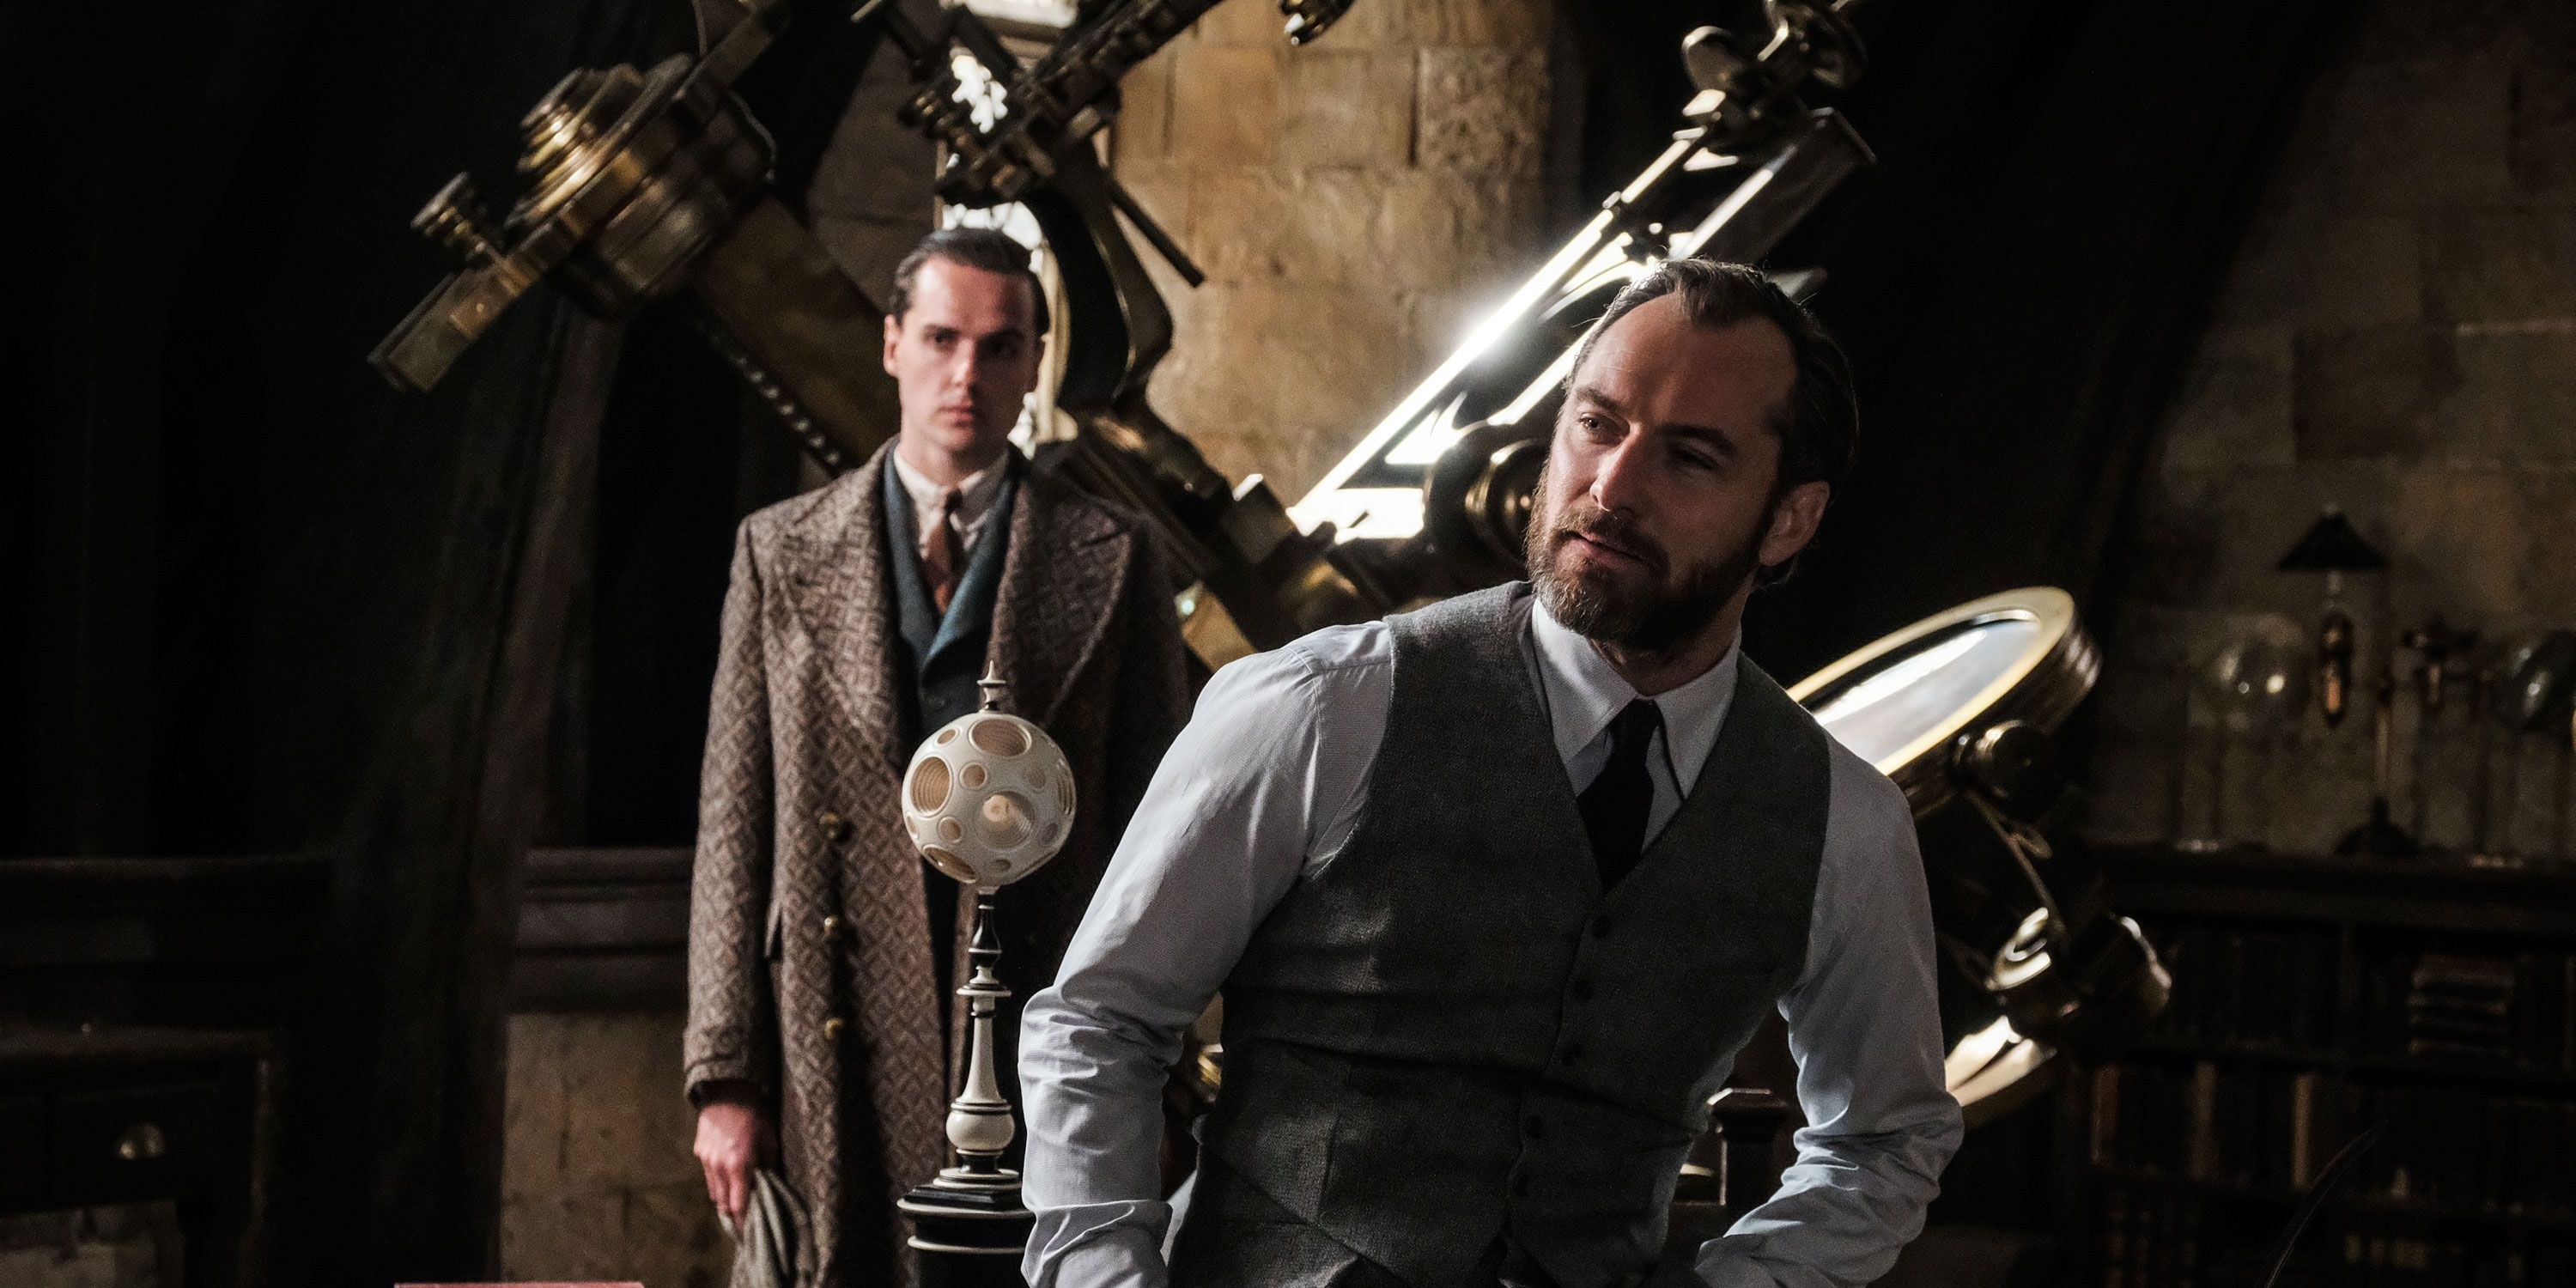 Jude Law as Albus Dumbledore, Fantastic Beasts 2, Fantastic Beasts: The Crimes of Grindelwald